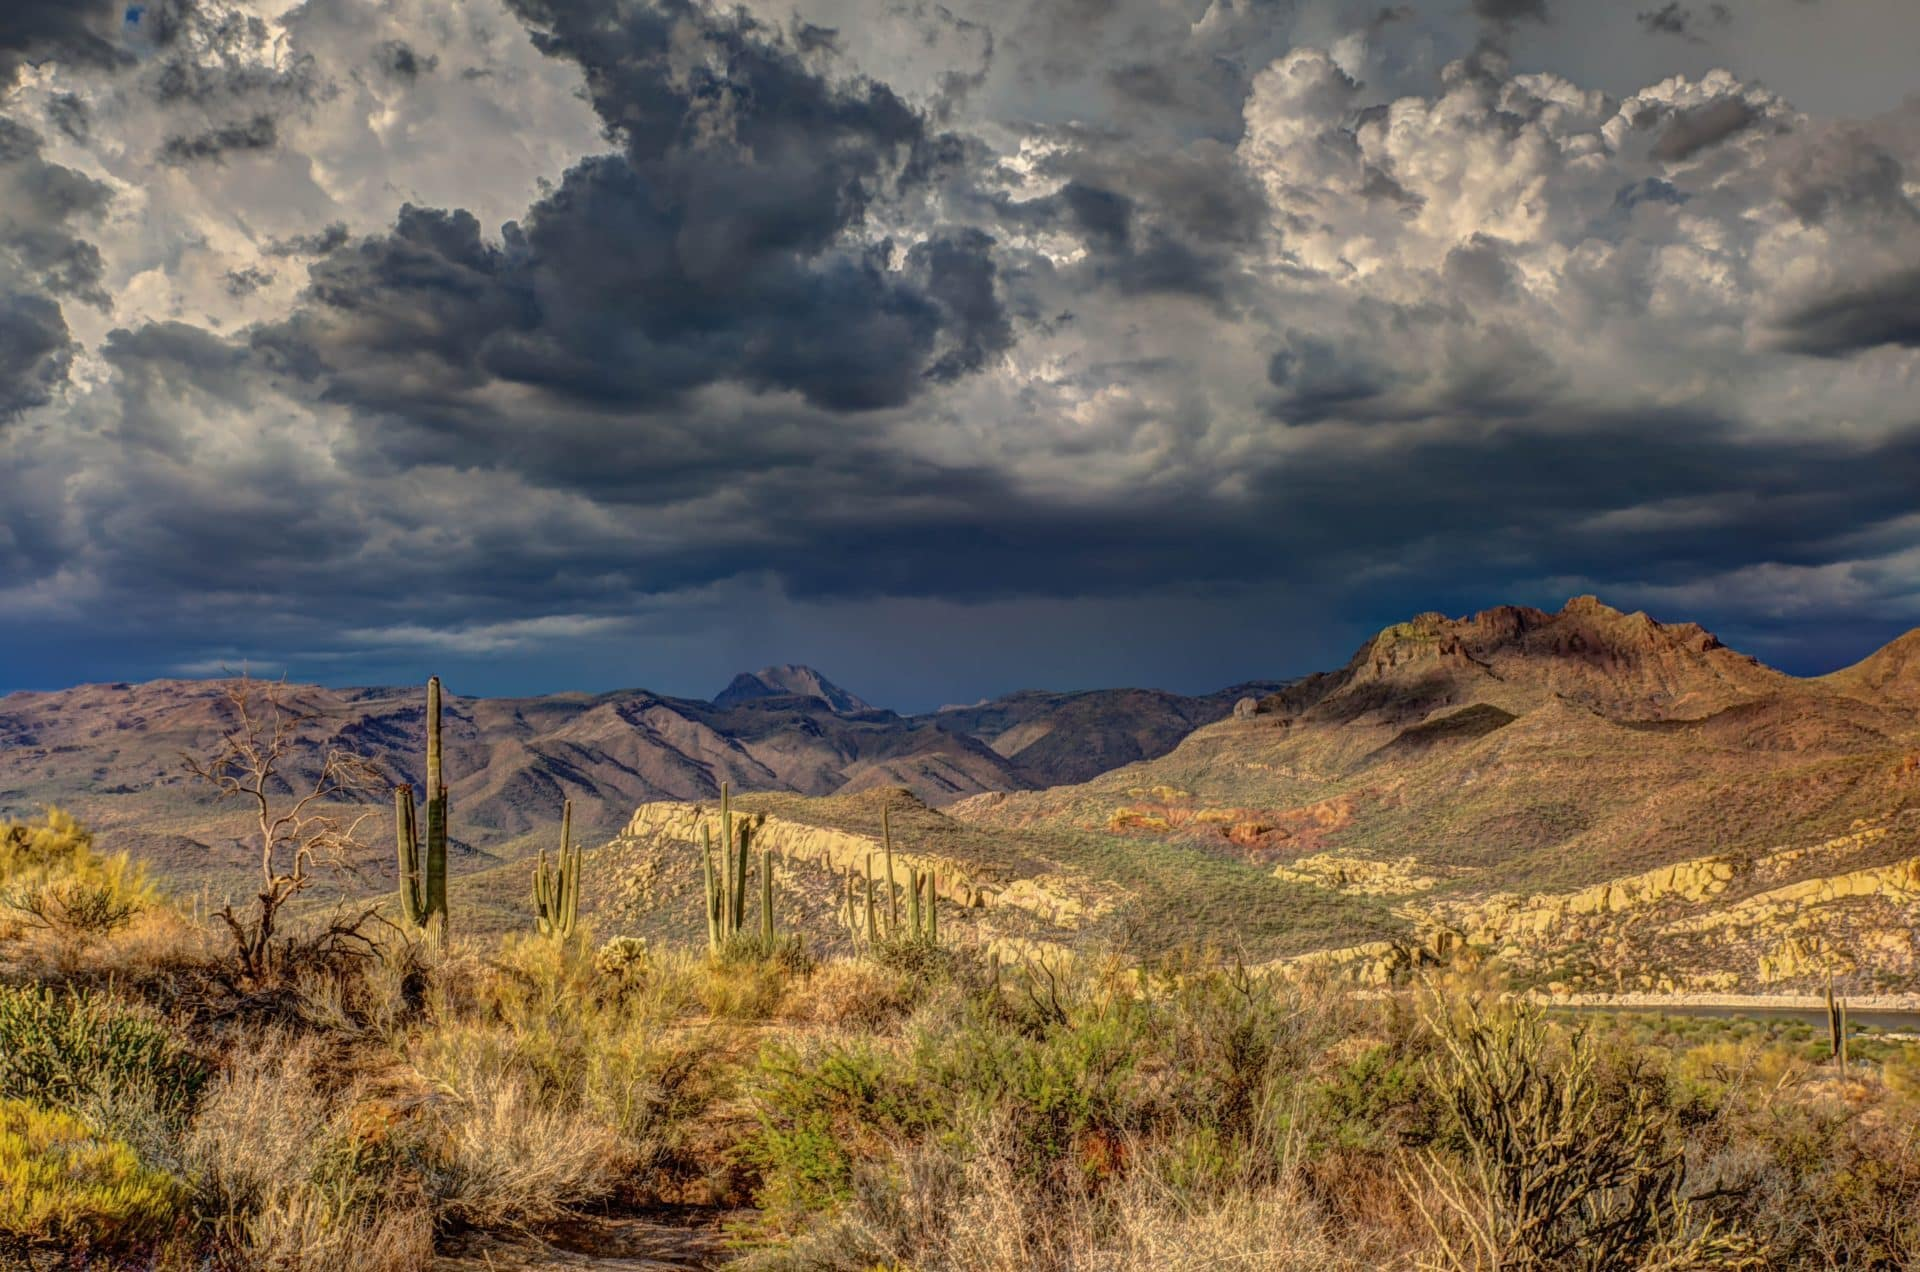 Desert with cactus and mountains underneath a cloudy sky in Tucson